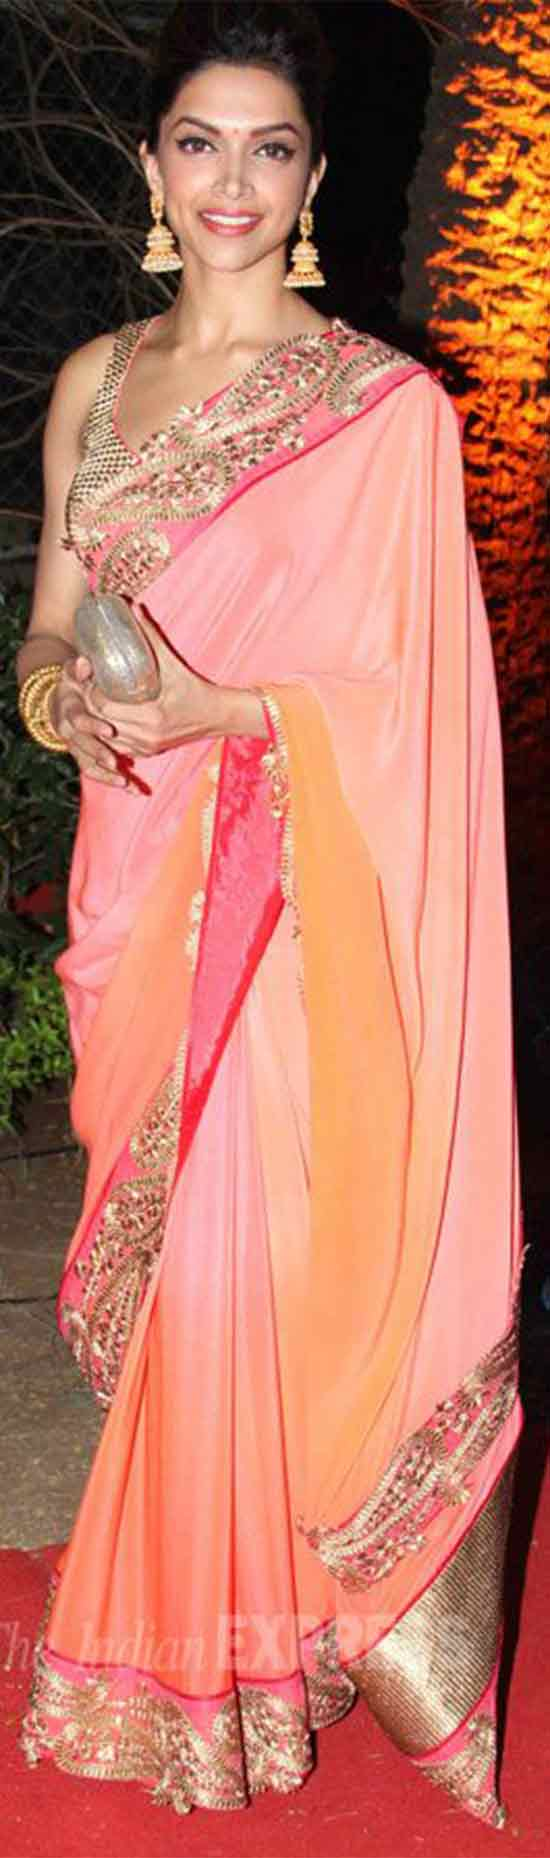 Deepika-Style-Peach-Color-Bollywood-Replica-Sarees